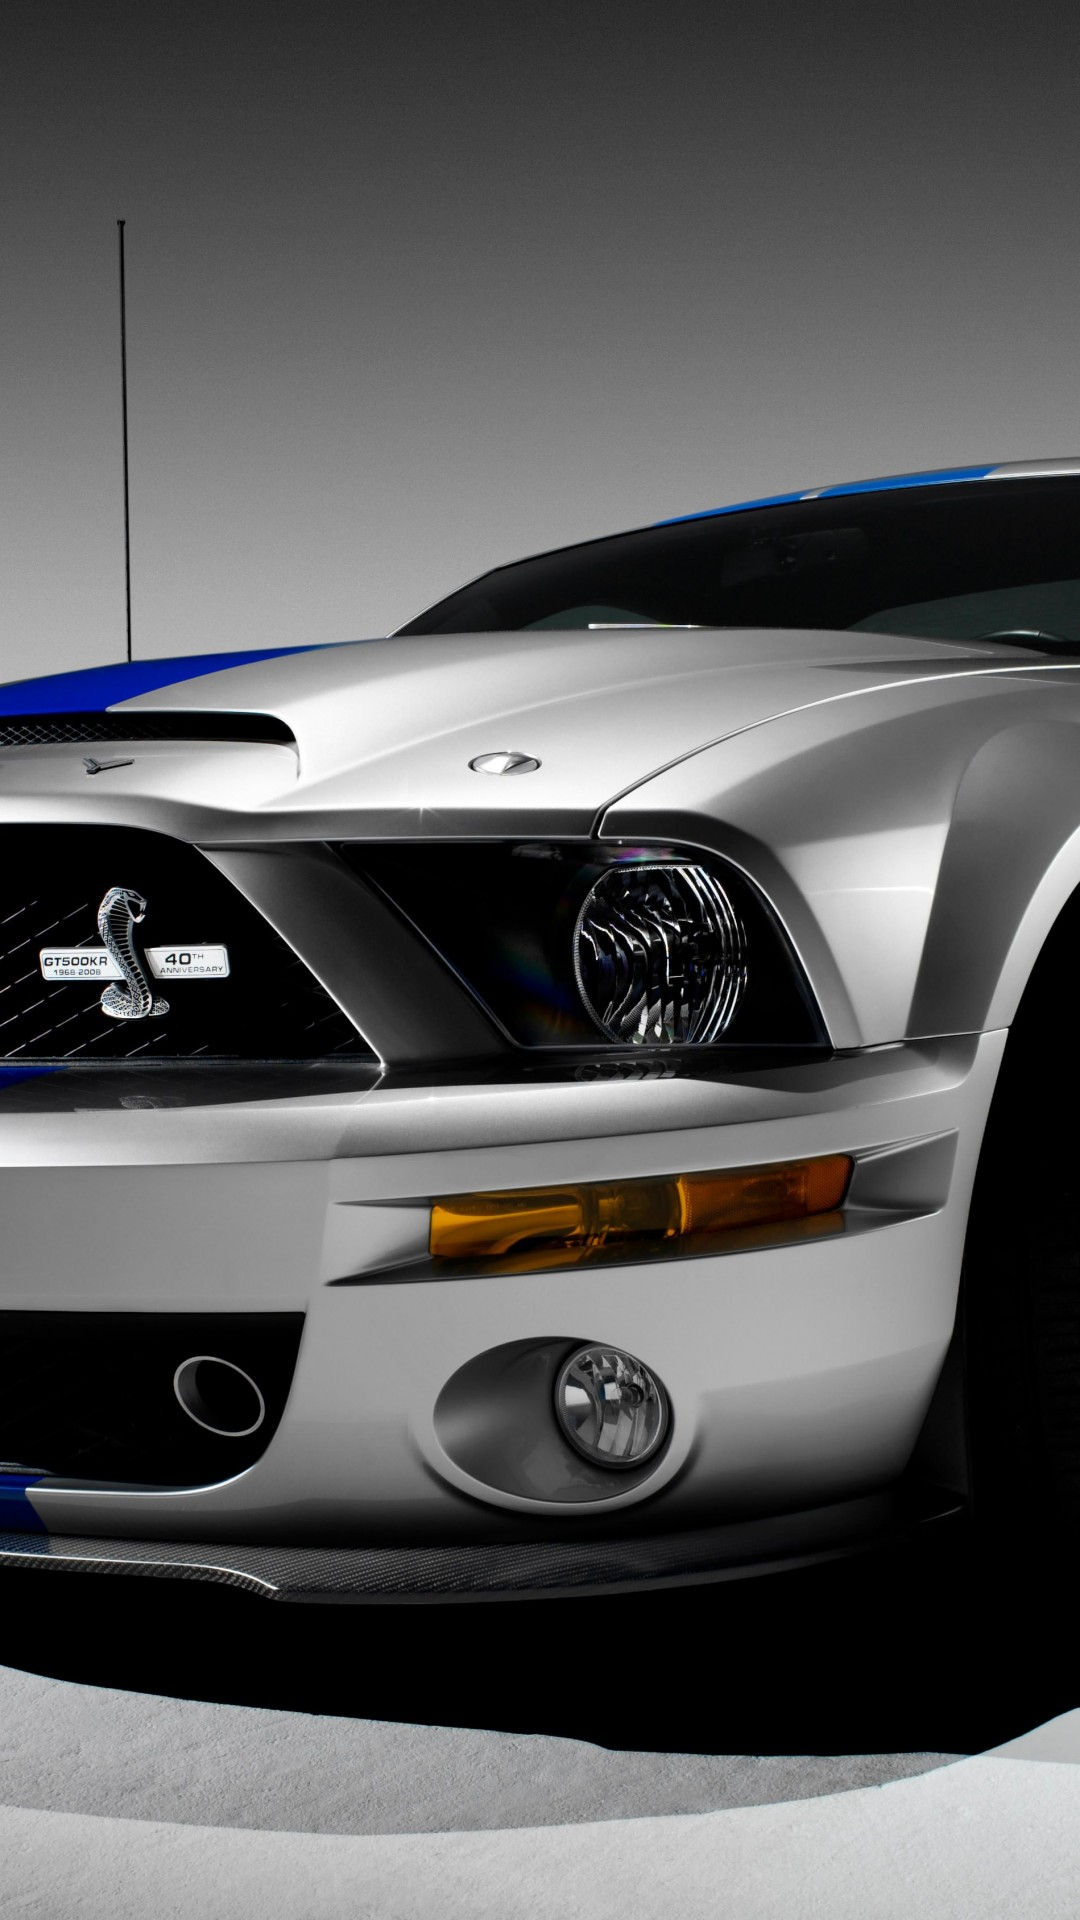 Shelby Mustang GT500KR Wallpaper for HTC One